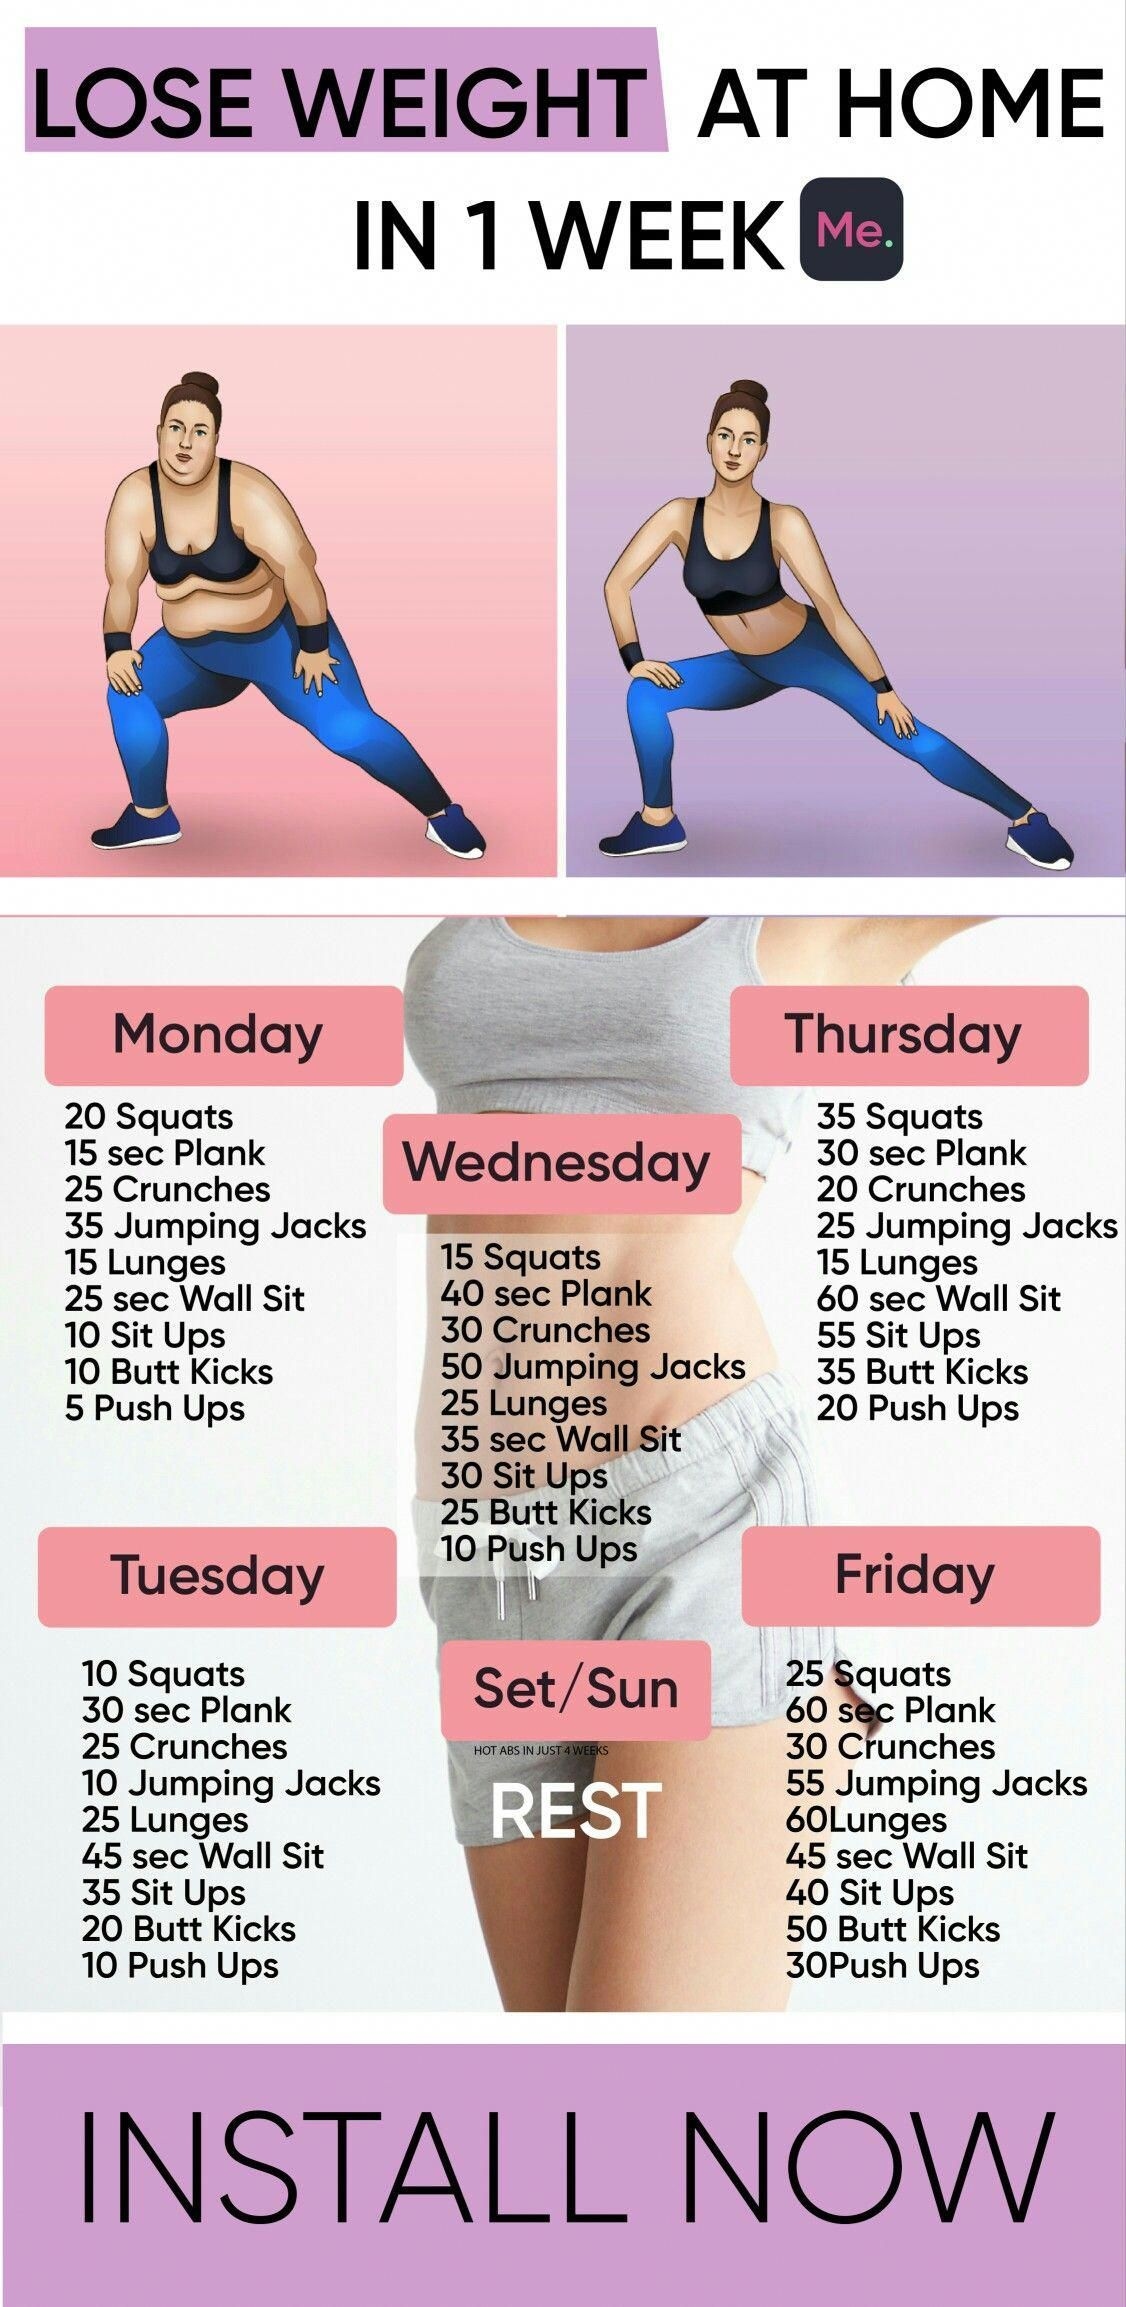 Pin By Sesilia Aukusitino On Body Maintenance In 2020 Health And Fitness Articles Fitness Articles Workout